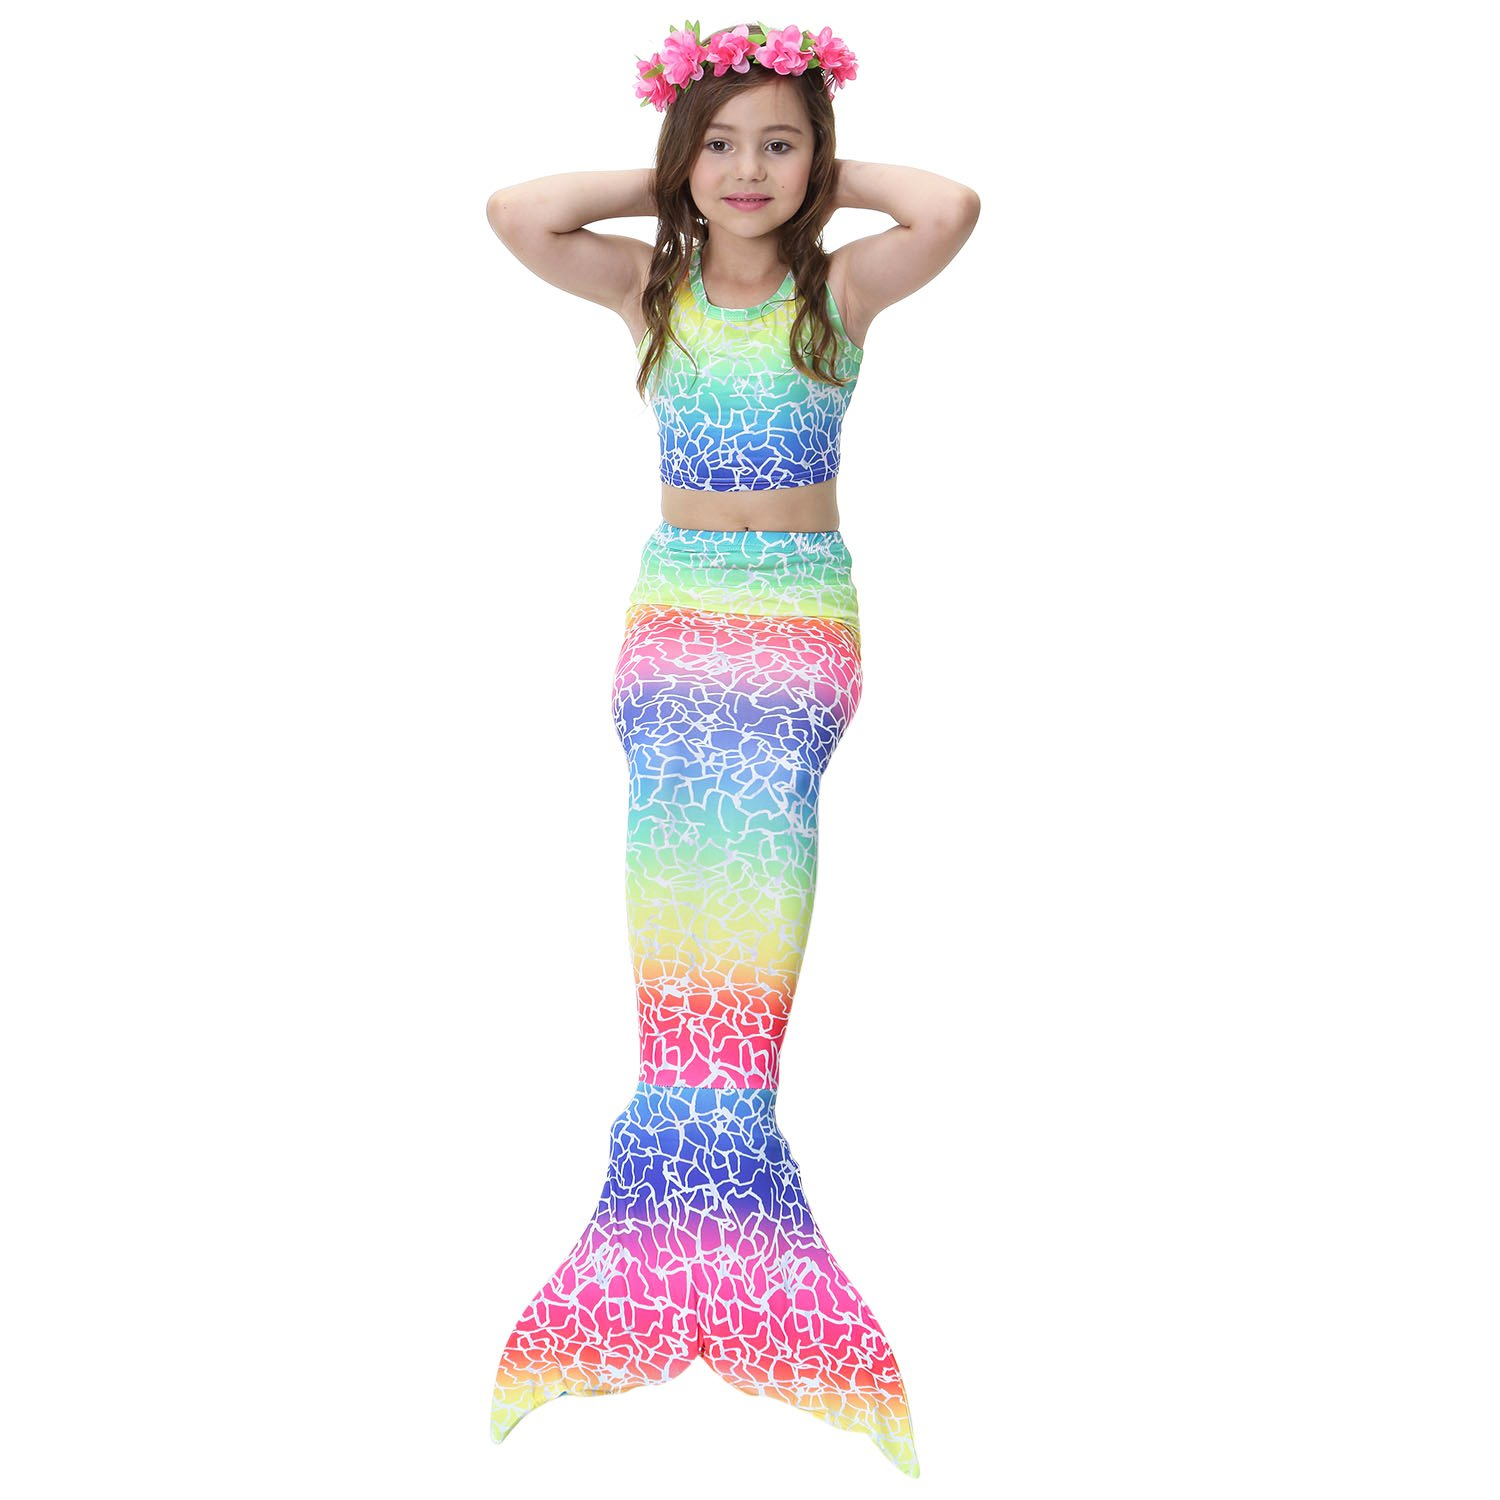 Wet//Dry Outfit for Kids and Adult 3 Piece Mermaid Tail Swimsuit with Removable Fin Included Monofin and Flower Headband